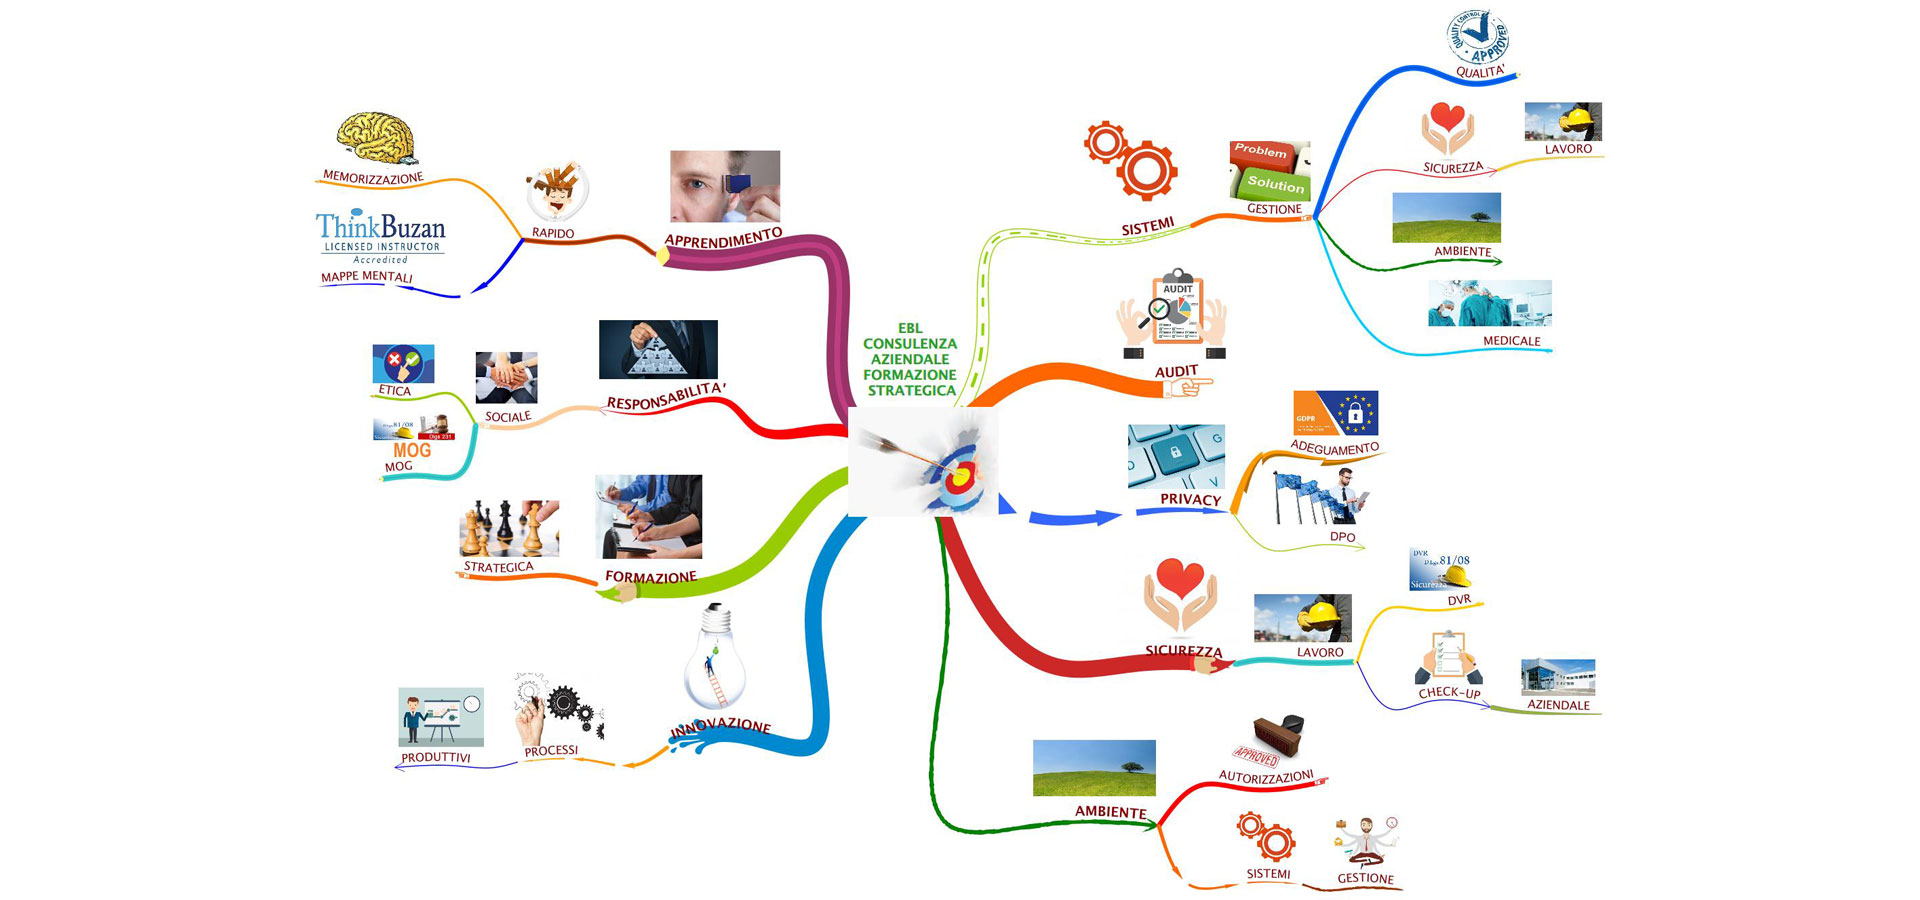 Mind Map of services